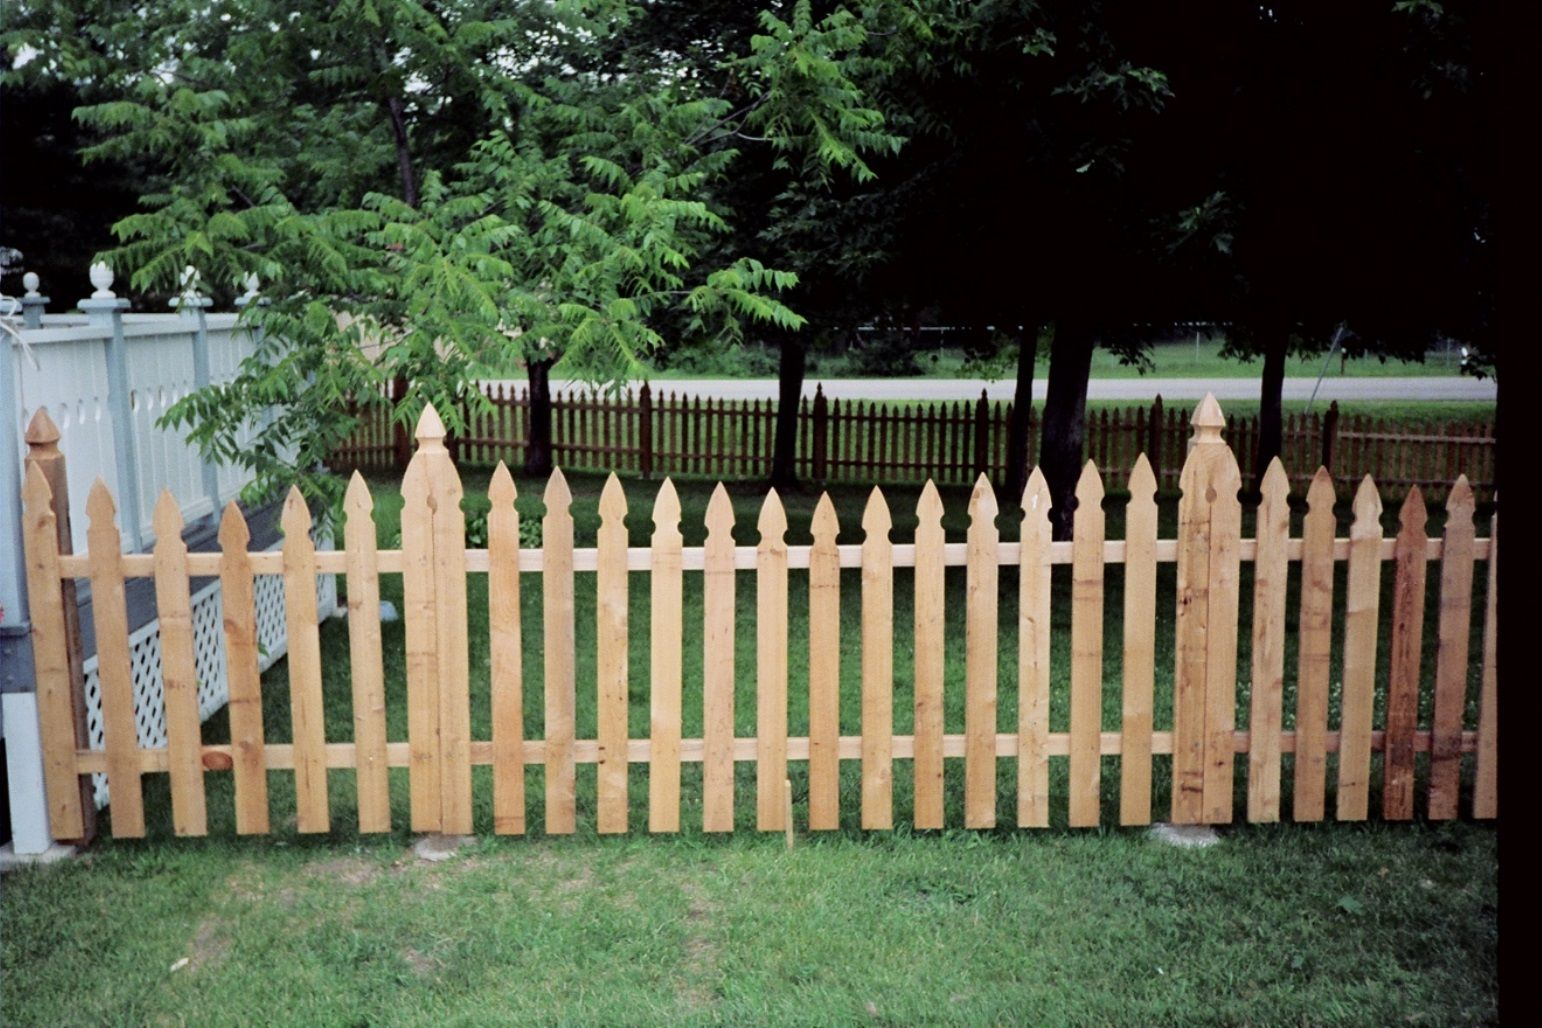 Fencing clipart fench. The topped posts on